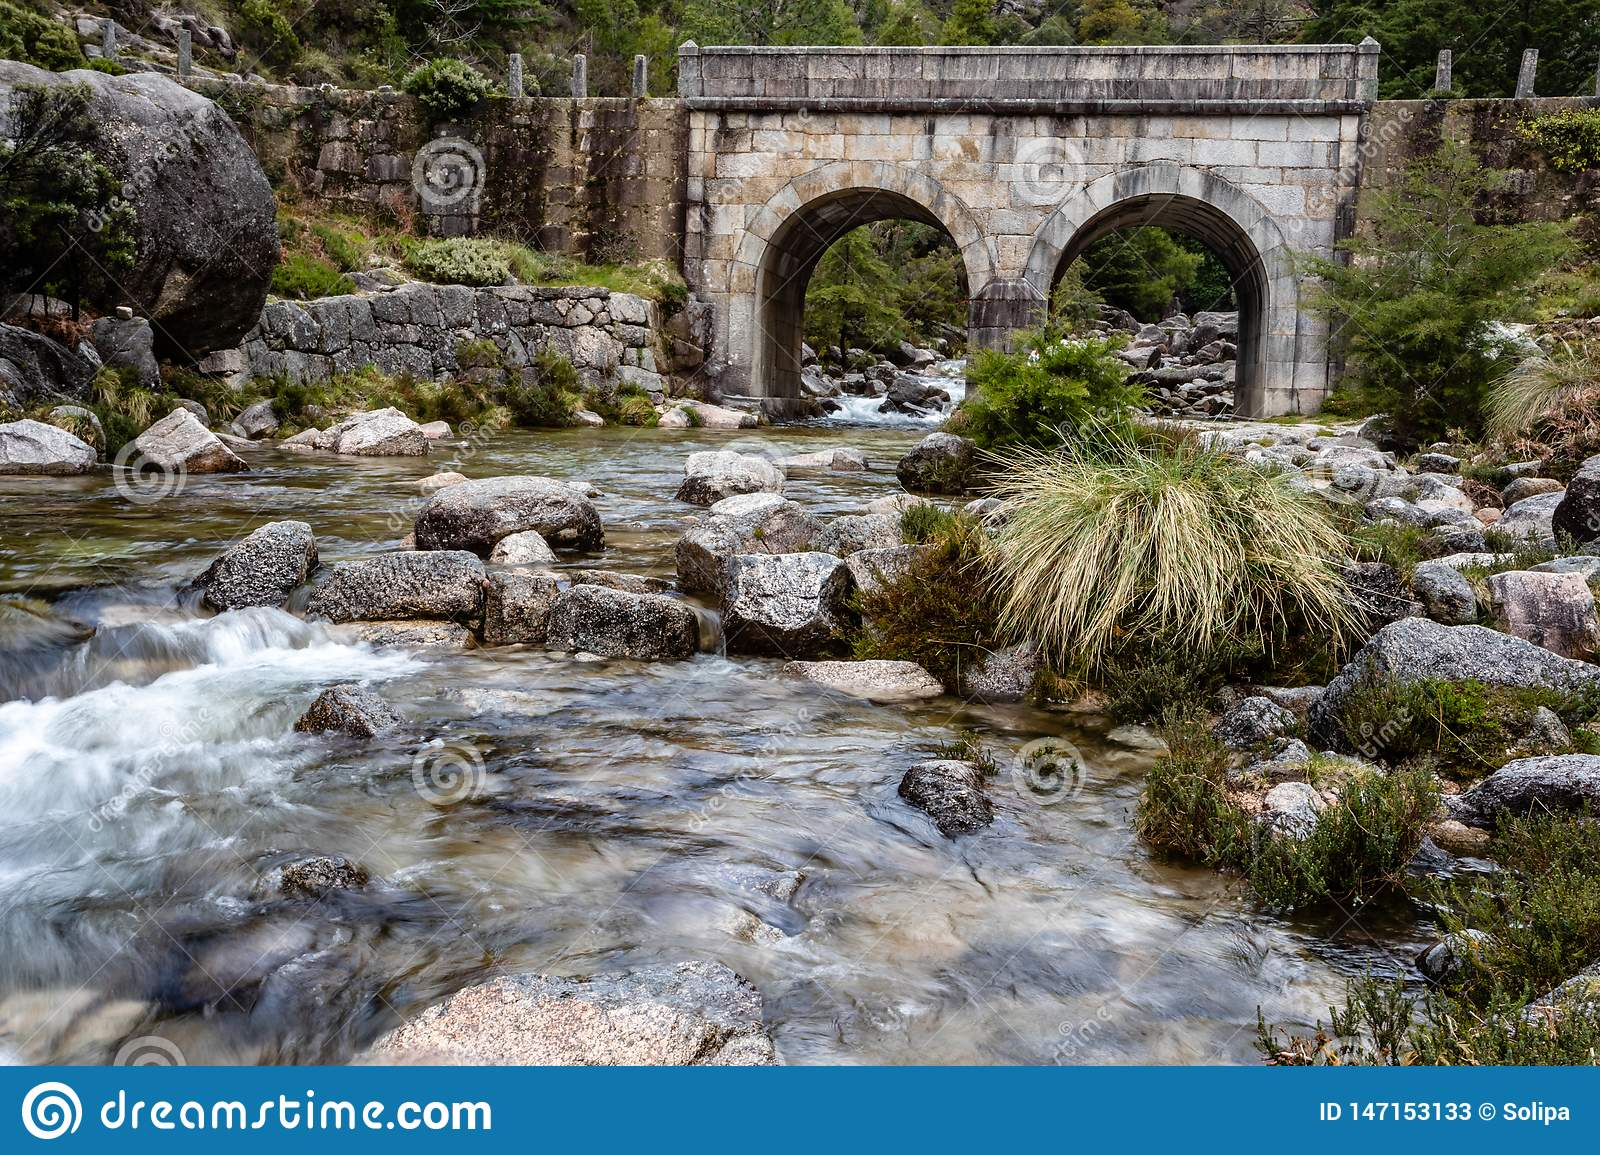 Small mountain bridge over a creek from the Peneda Geres National Park, north of Portugal